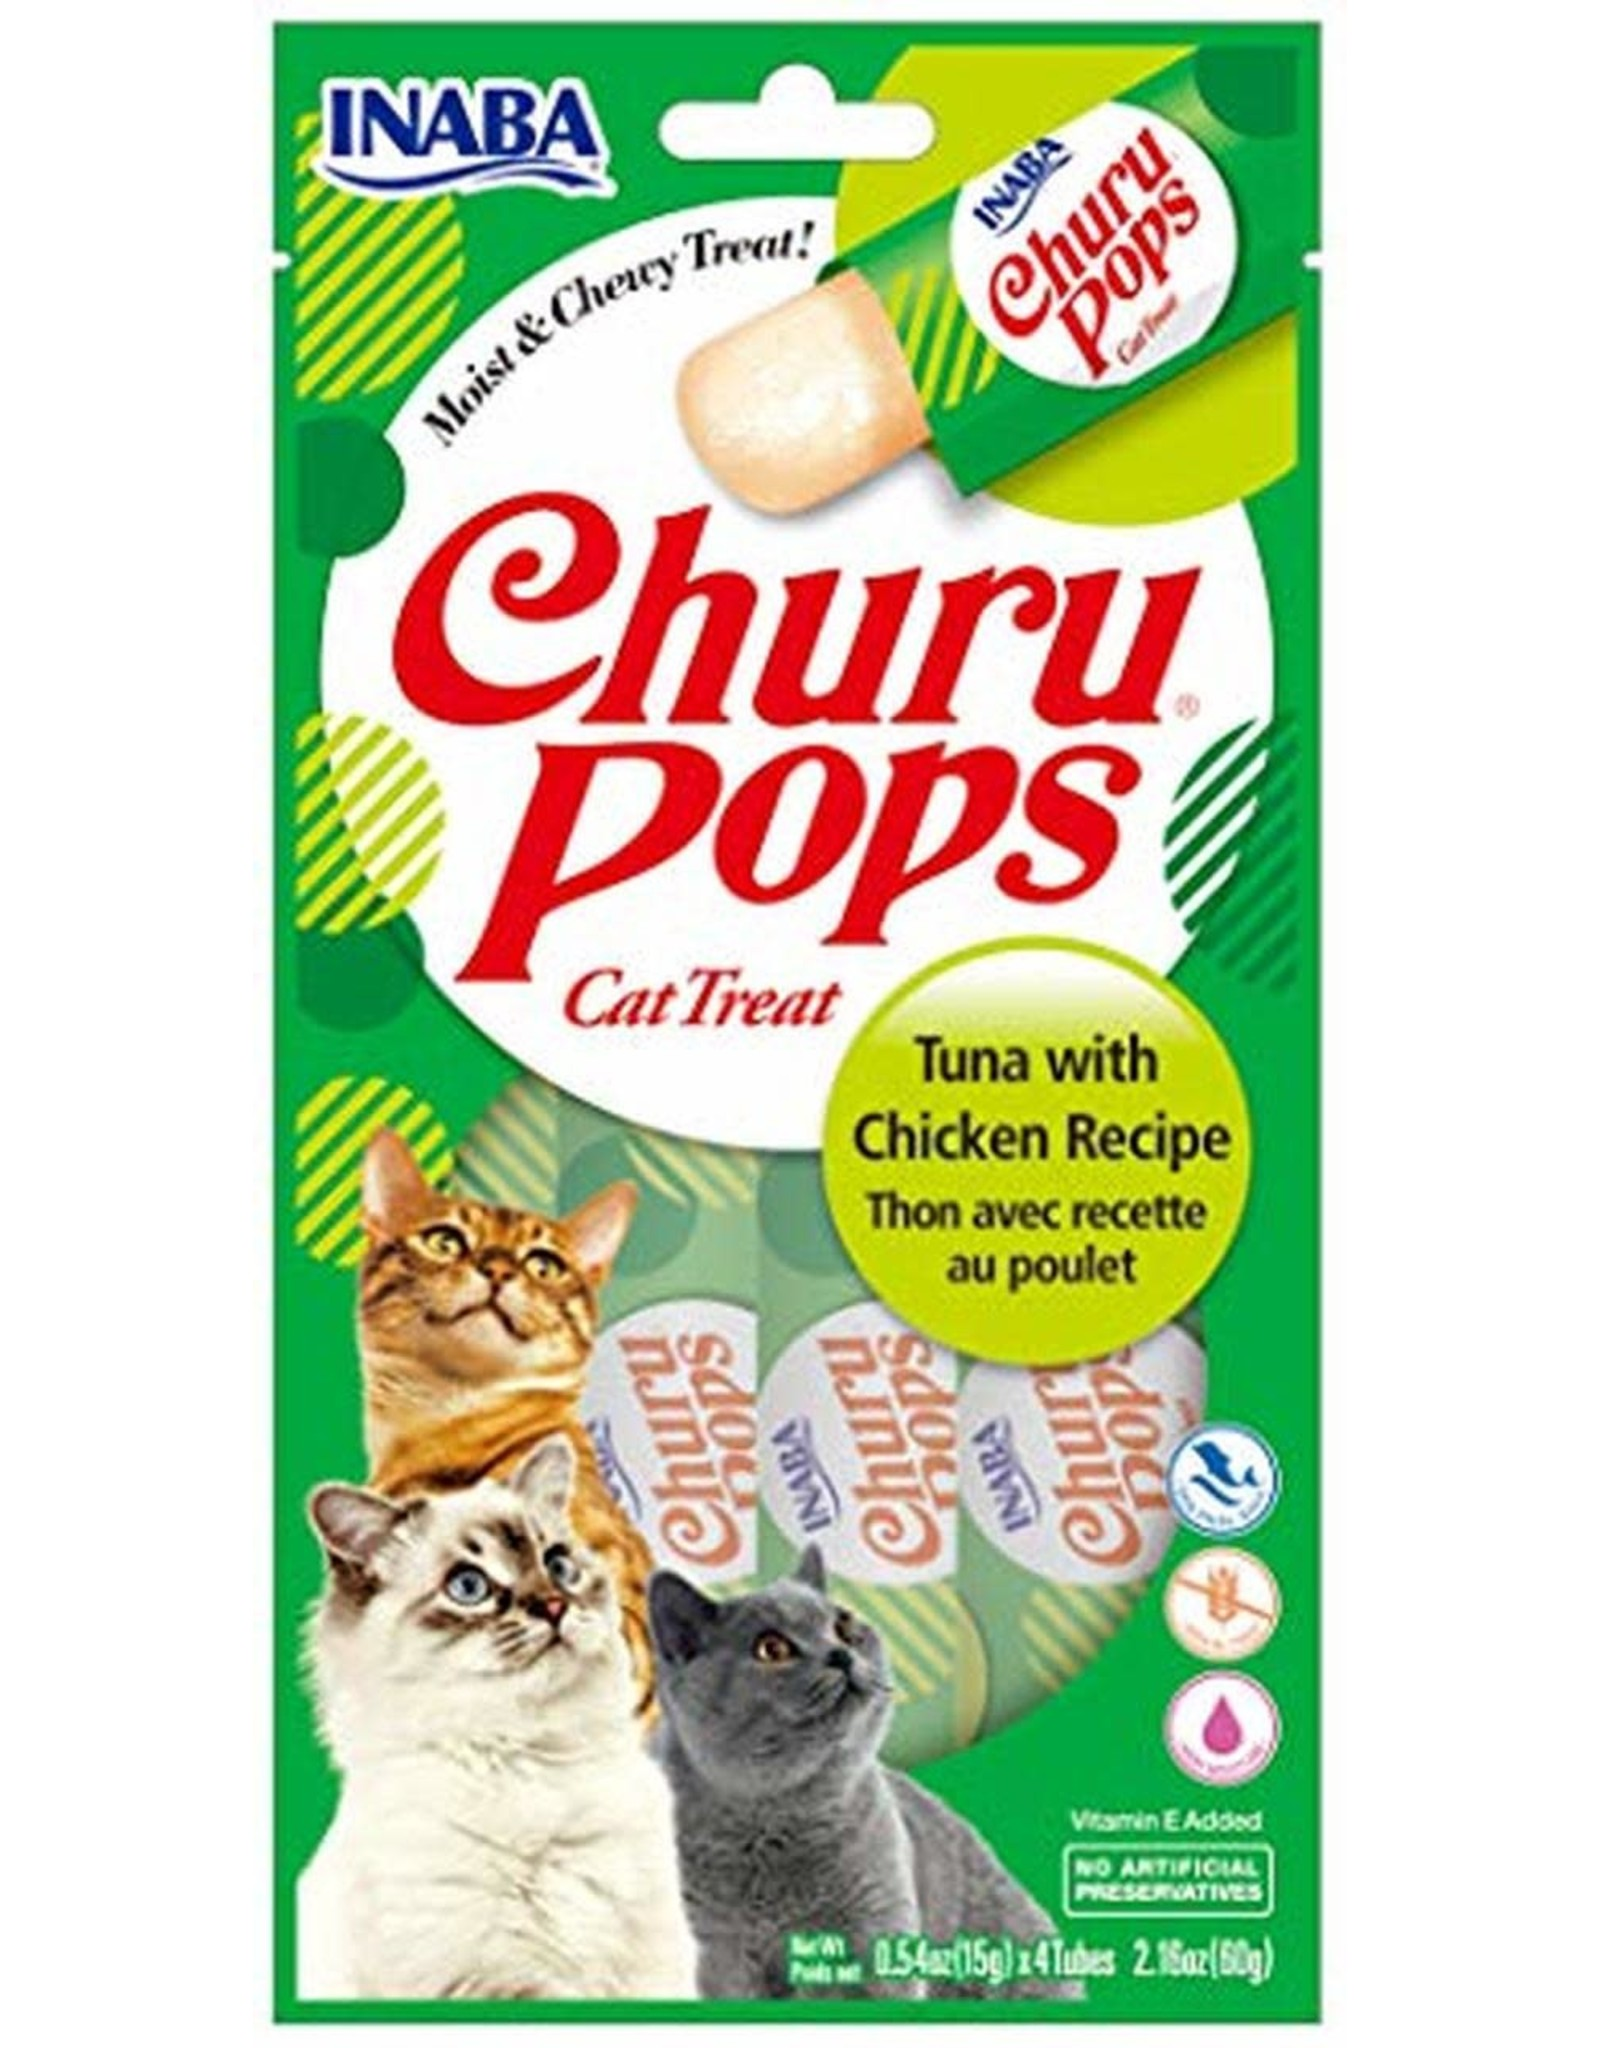 Inaba INABA CAT CHURU POPS TUNA WITH CHICKEN RECIPE 4-COUNT